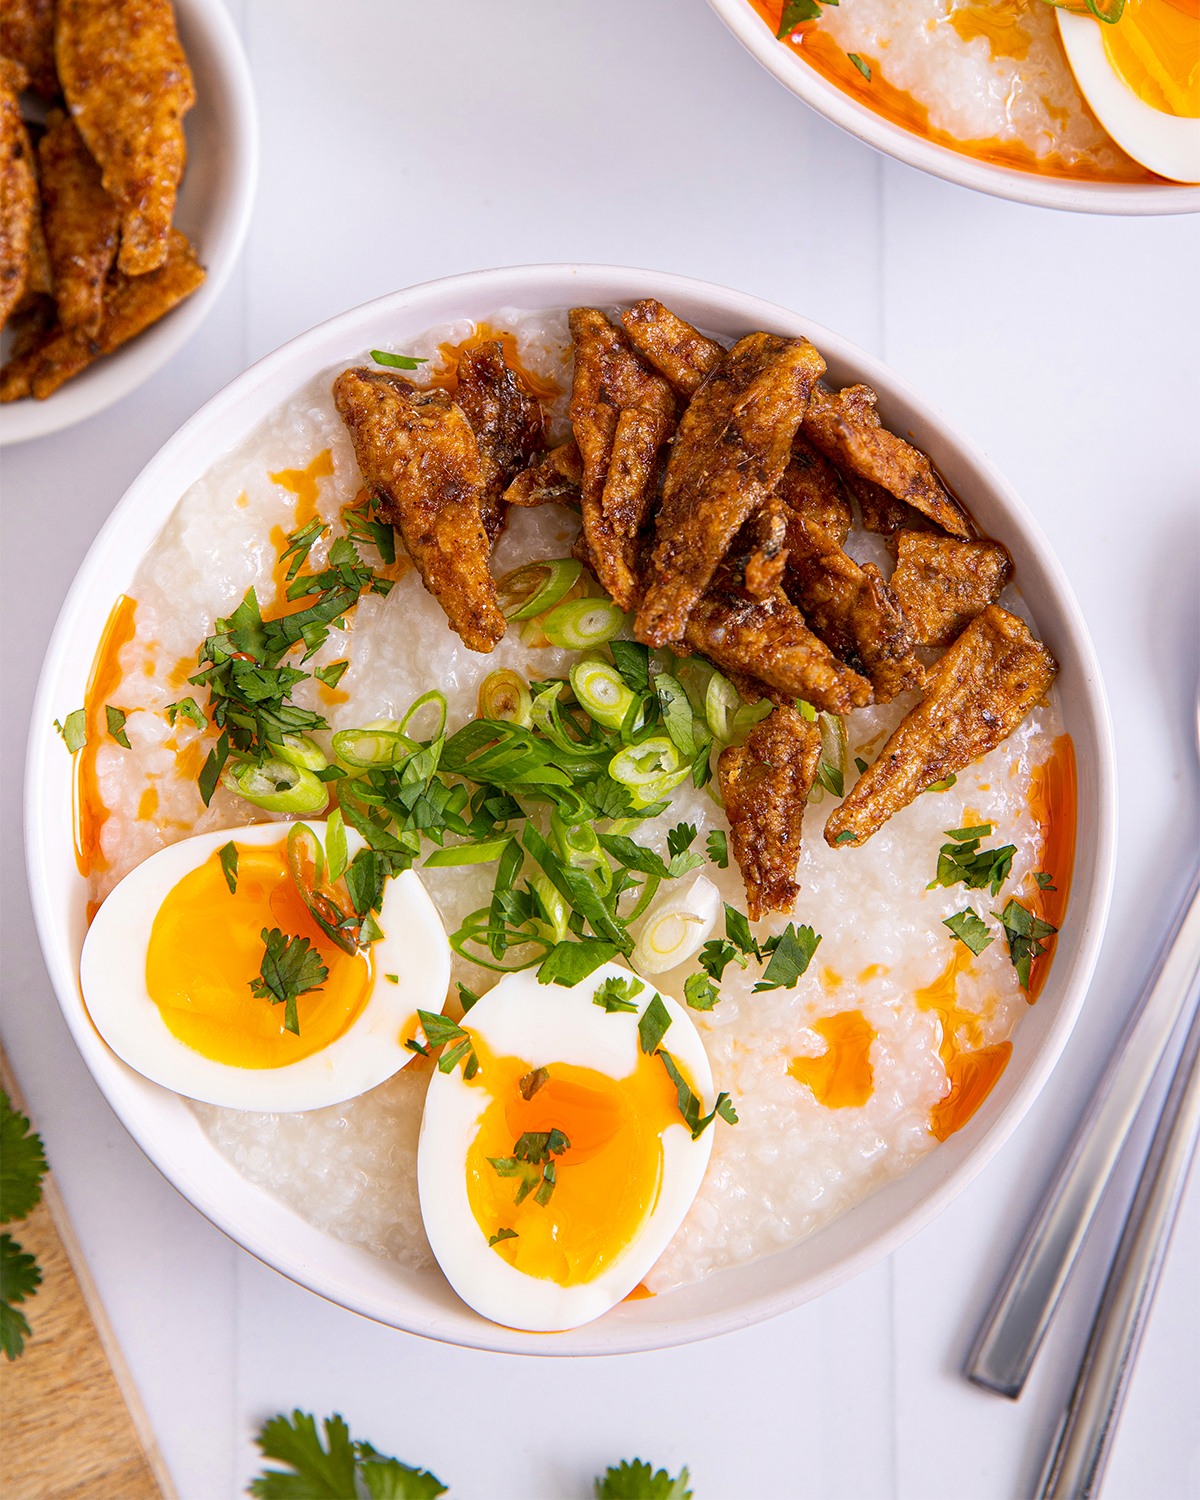 bowl of congee surrounded by chopsticks, bowl of cilantro, uncooked rice